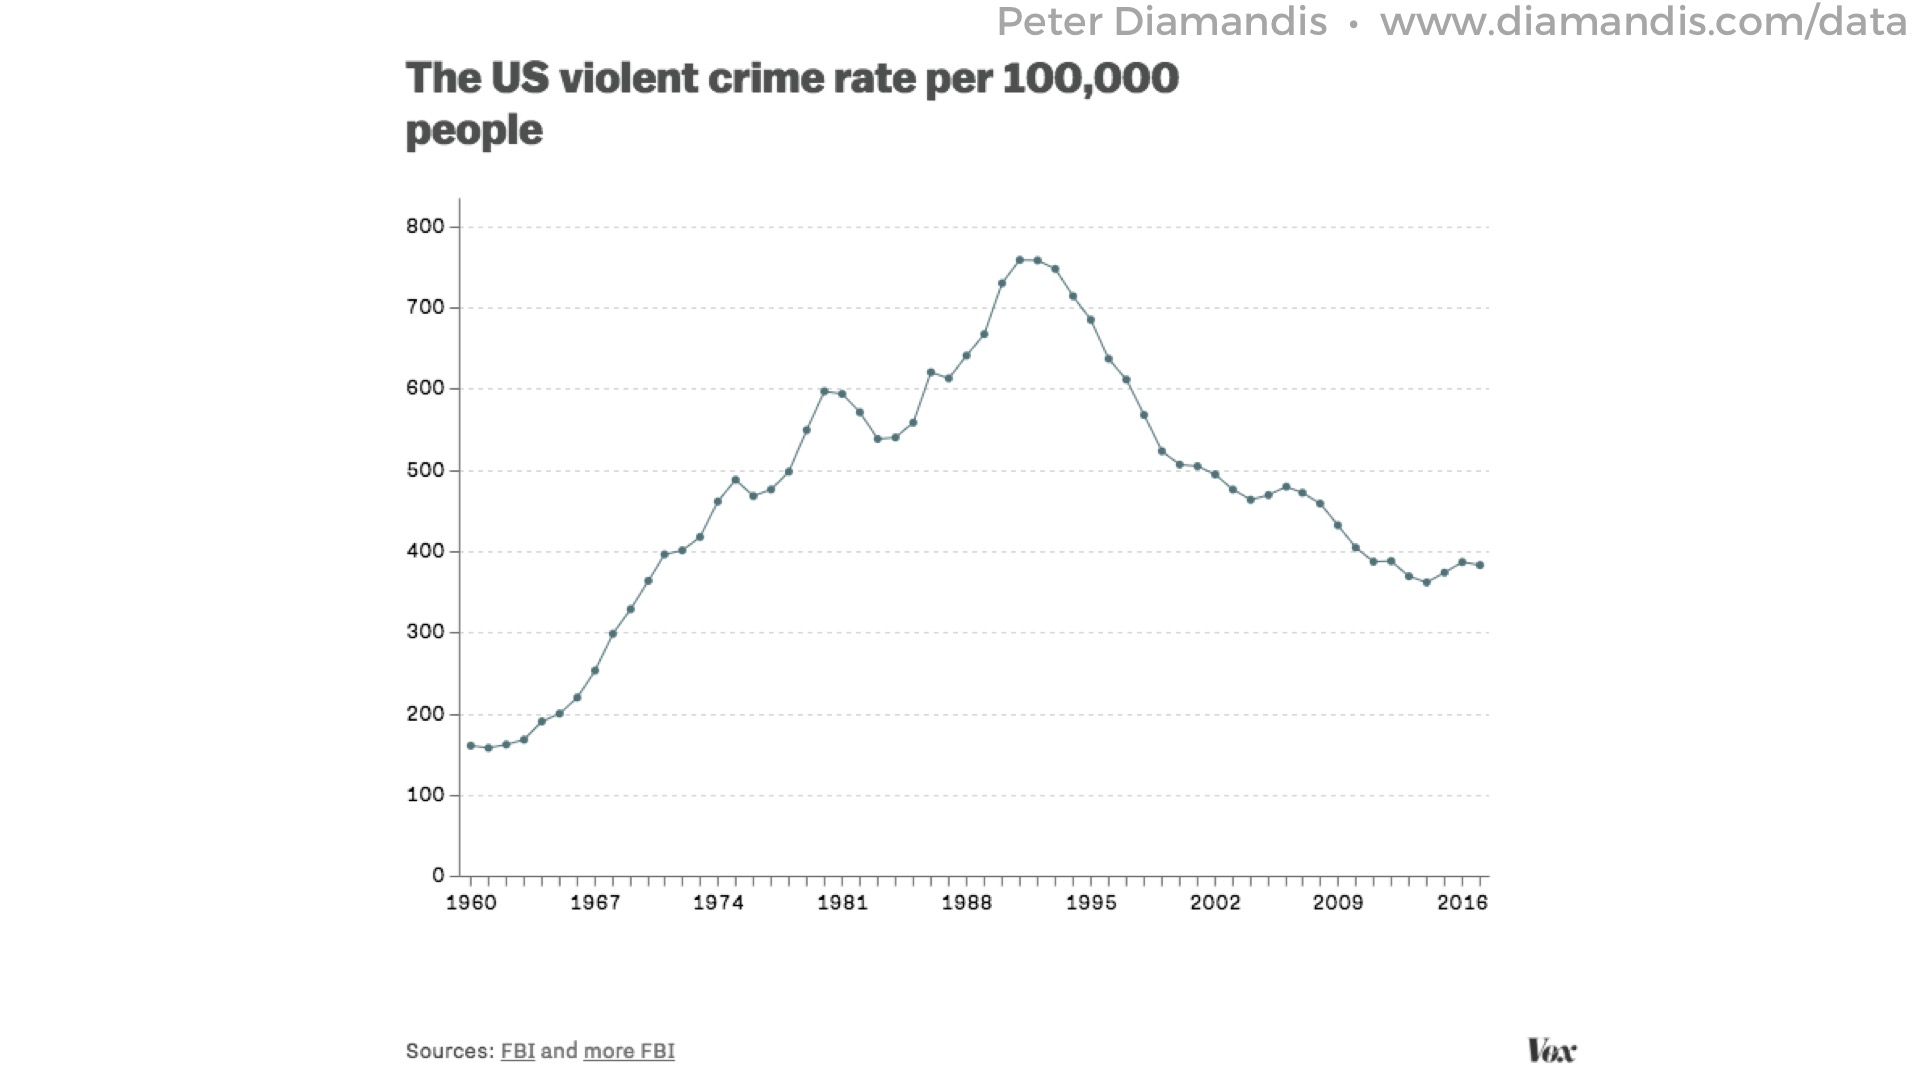 16%20Violent%20crime%20in%20the%20US%20is%20going%20down